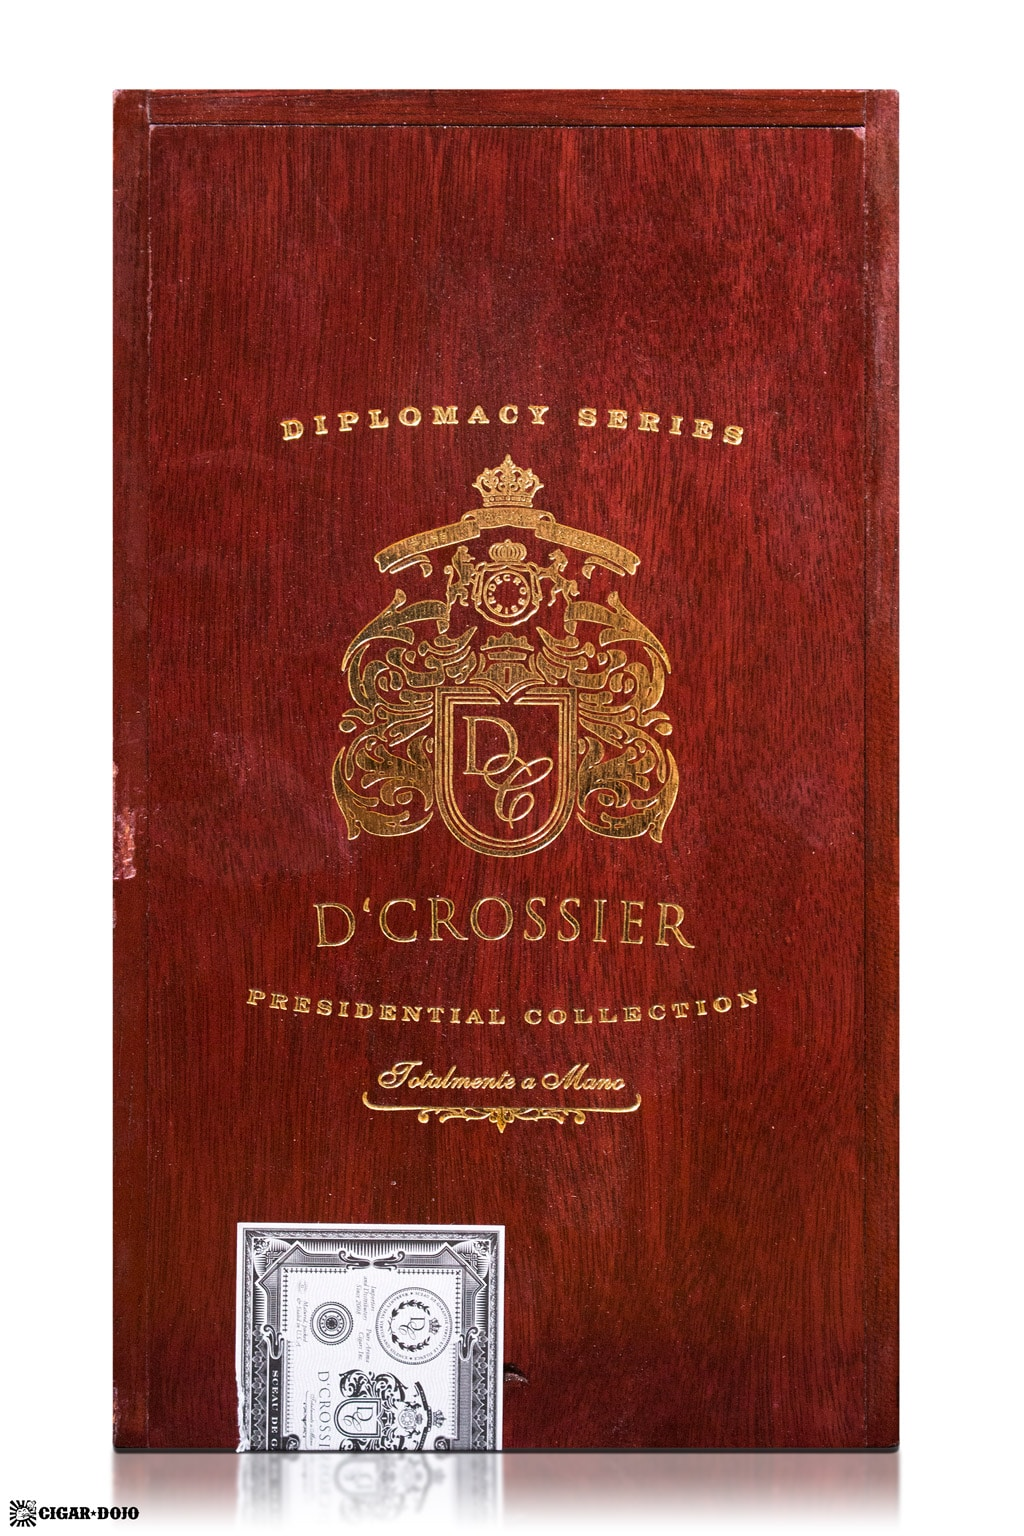 D'Crossier Diplomacy Series cigar box